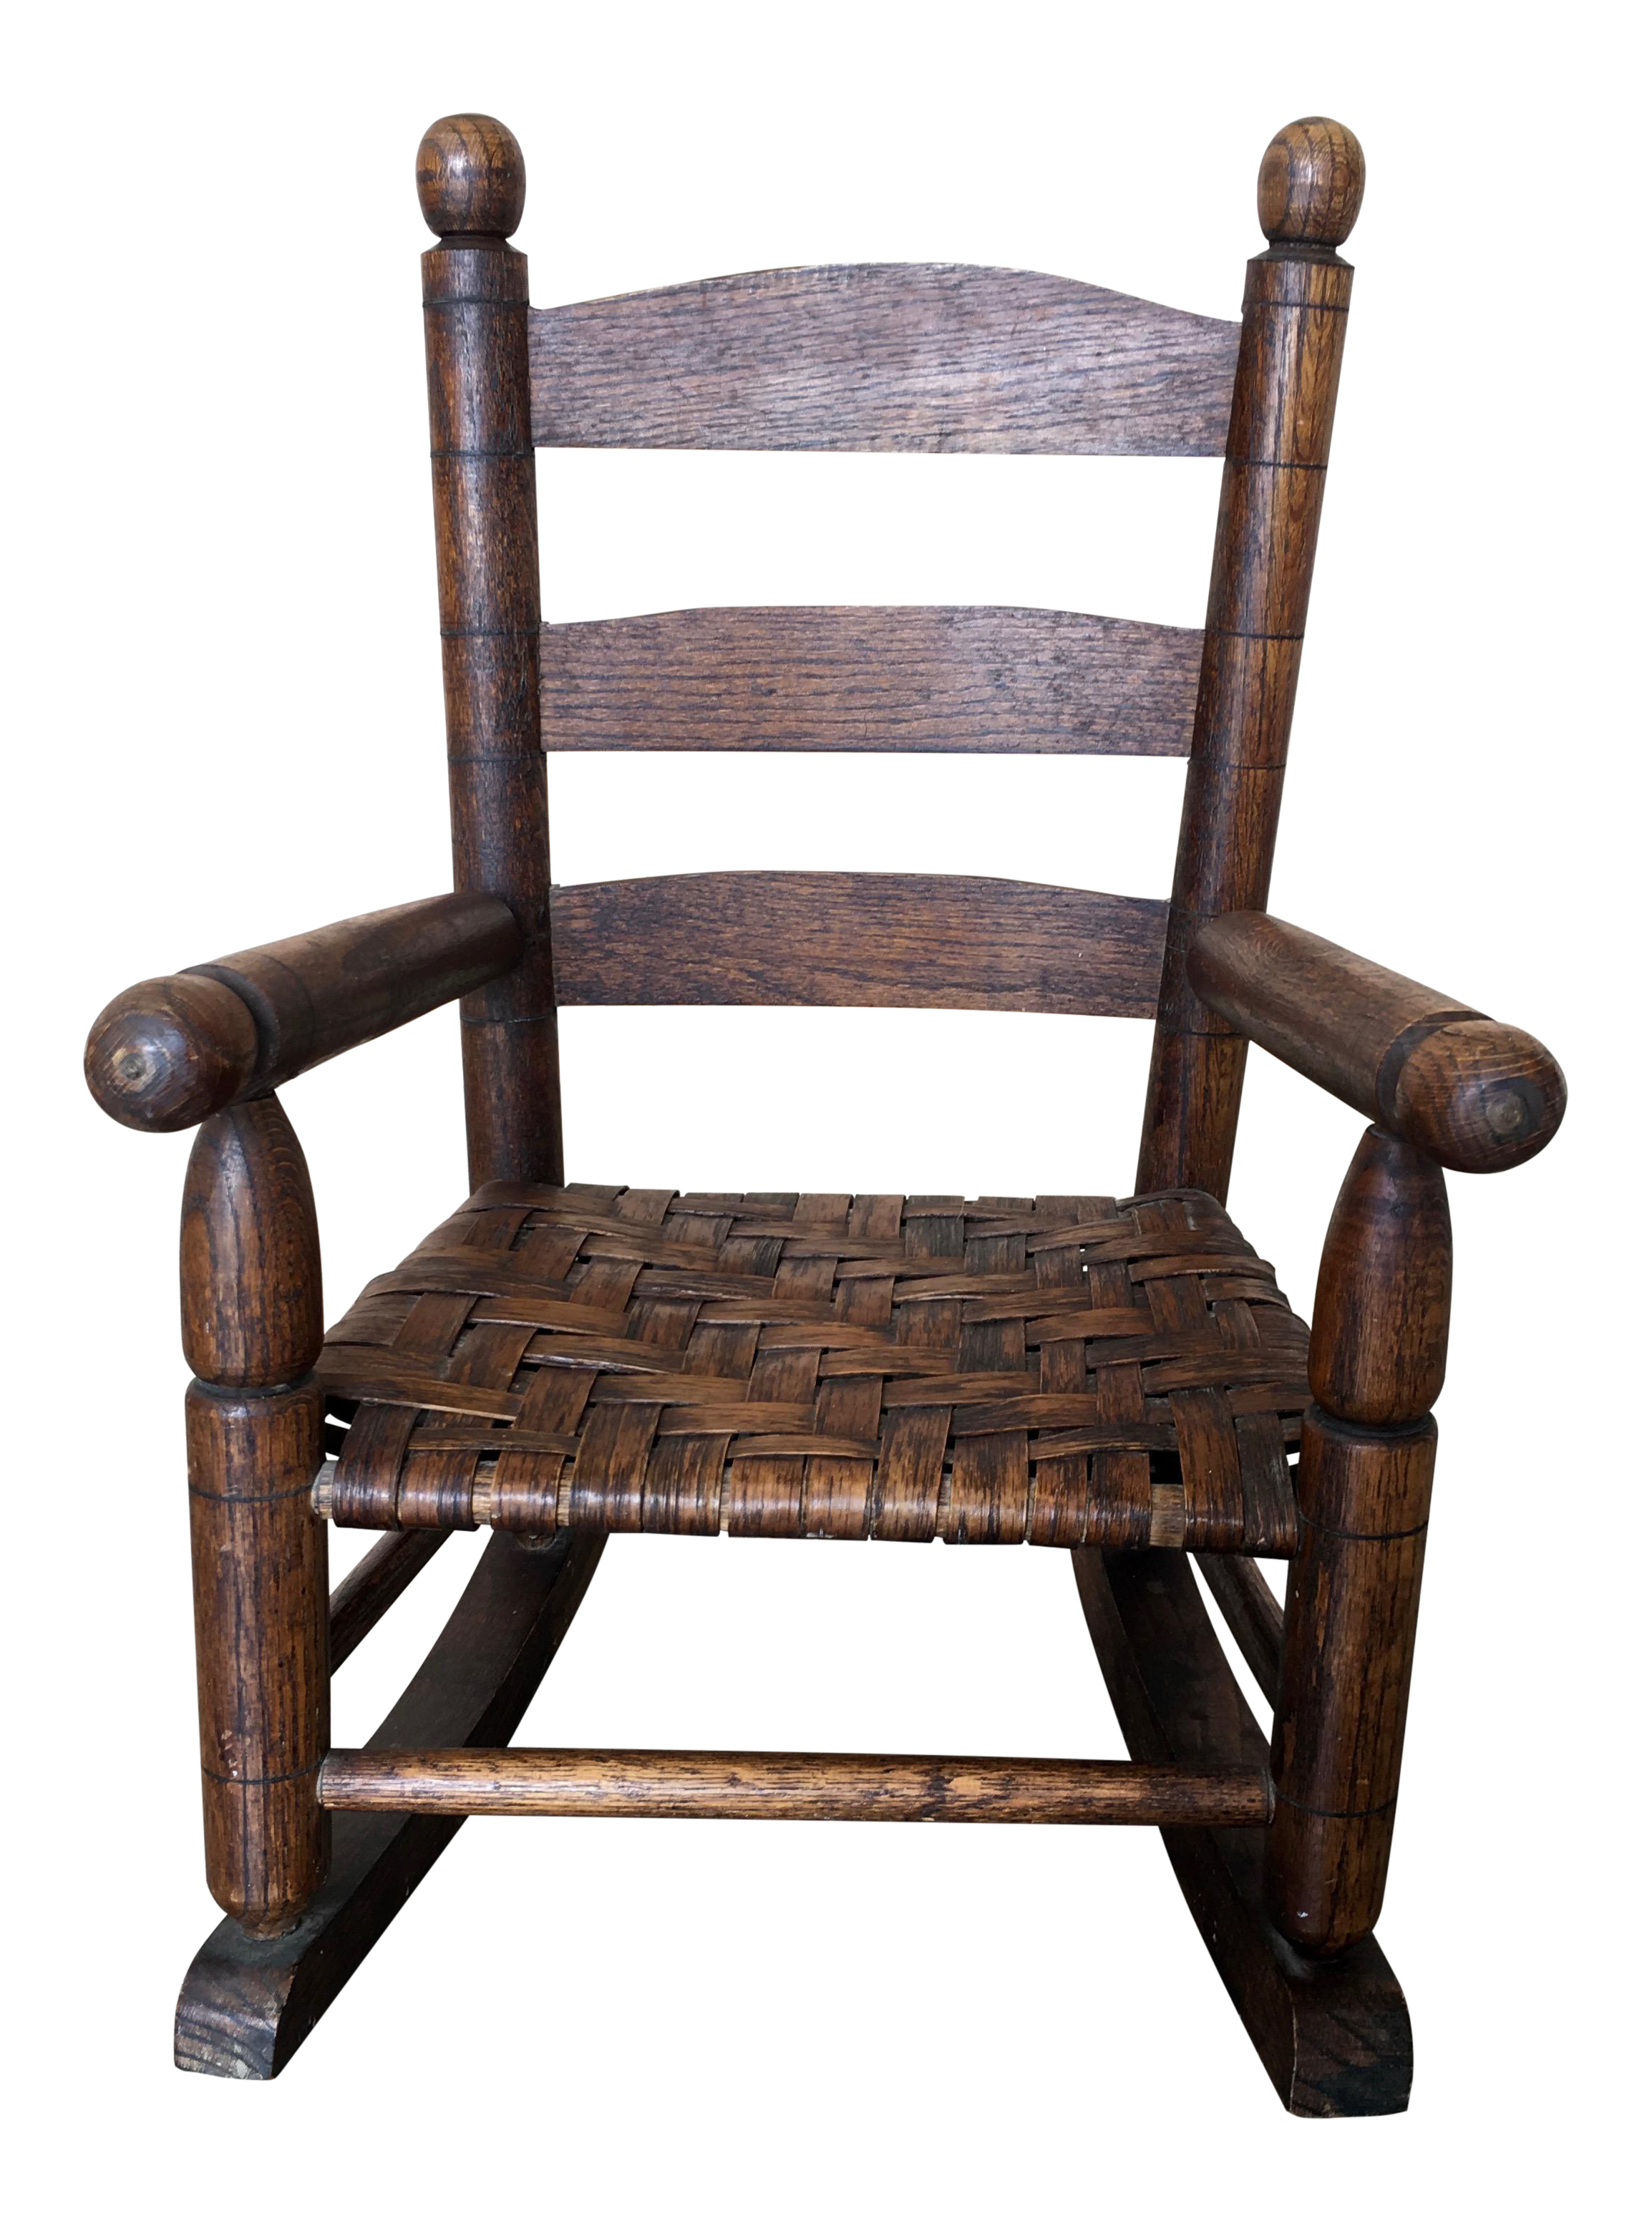 Basket Weave Country Childu0027s Rocking Chair